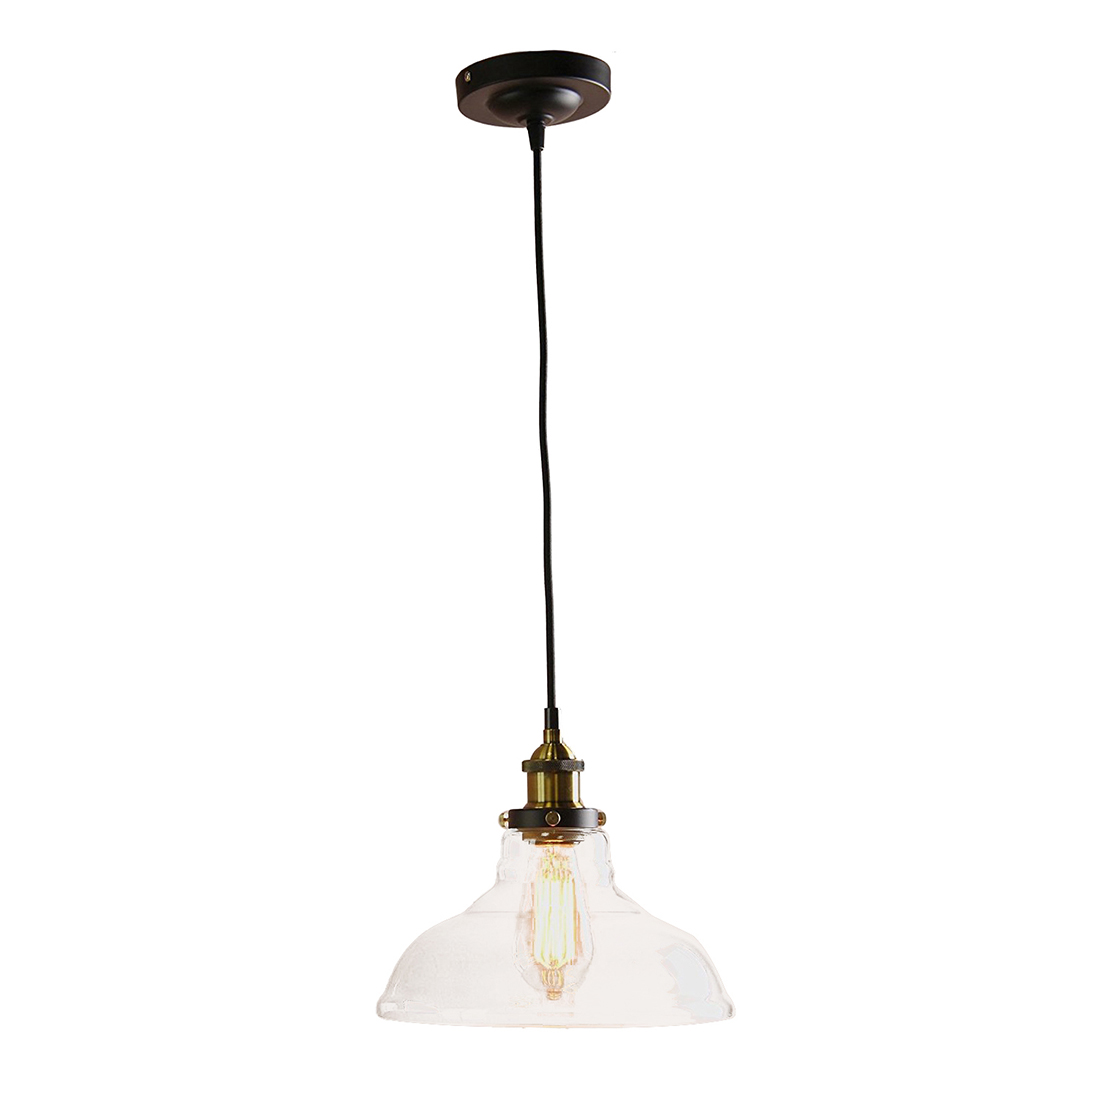 CSS Modern Vintage Industrial 1 Light Iron Body Glass Shade Loft Coffee Bar Kitchen cover Chandeliers Hanging Pendant Lamp Lig